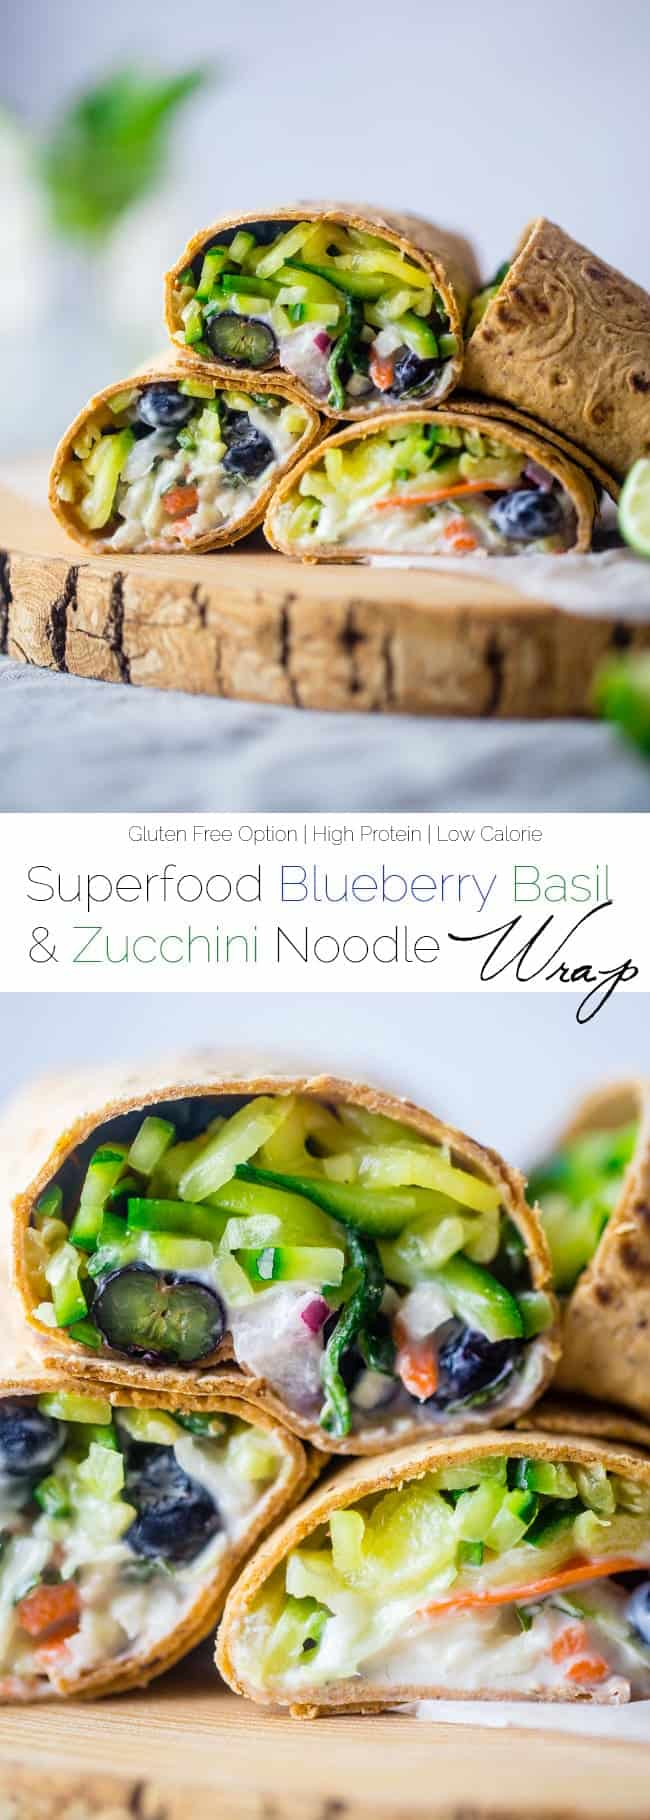 Superfood Blueberry Basil & Zucchini Noodles Wrap - A quick and easy wrap that has creamy lime yogurt and blueberries. It's a protein-packed, healthy and portable lunch for only 200 calories! Gluten free option! | Foodfaithfitness.com | @FoodFaithFit